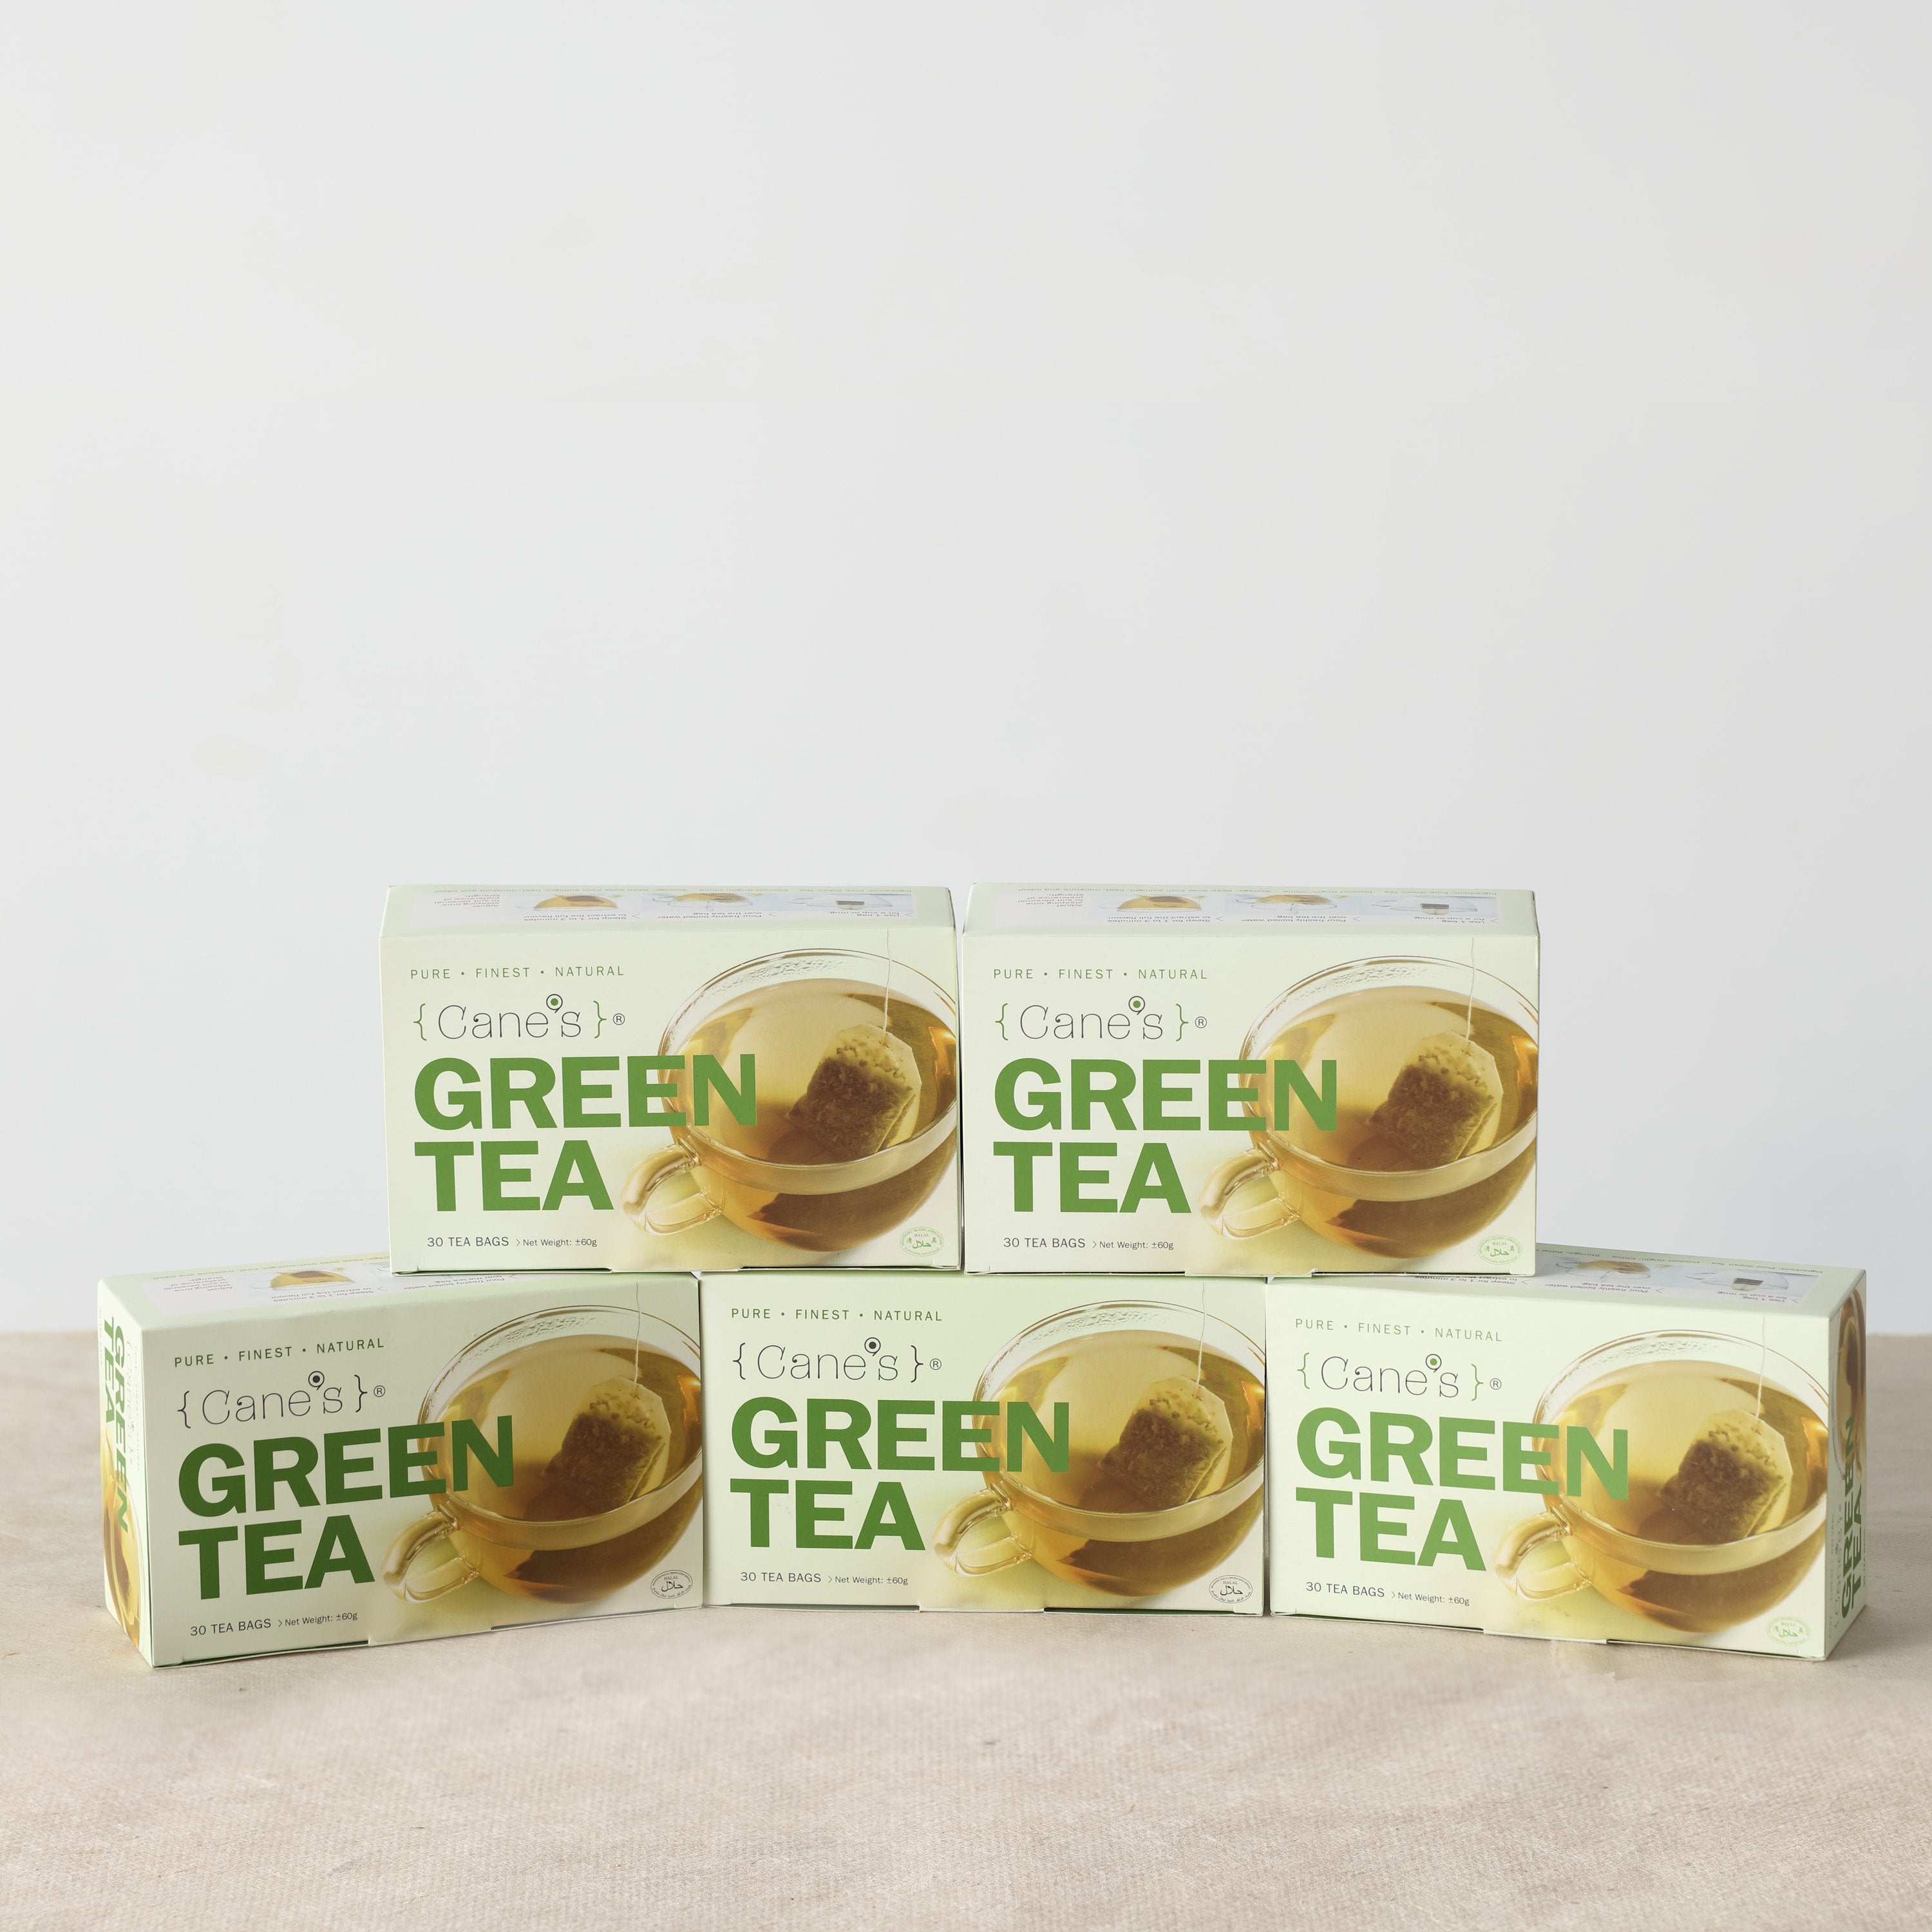 Cane\'s Green Tea E-Offer Value Pack (30 Teabags/ 5 Boxes)